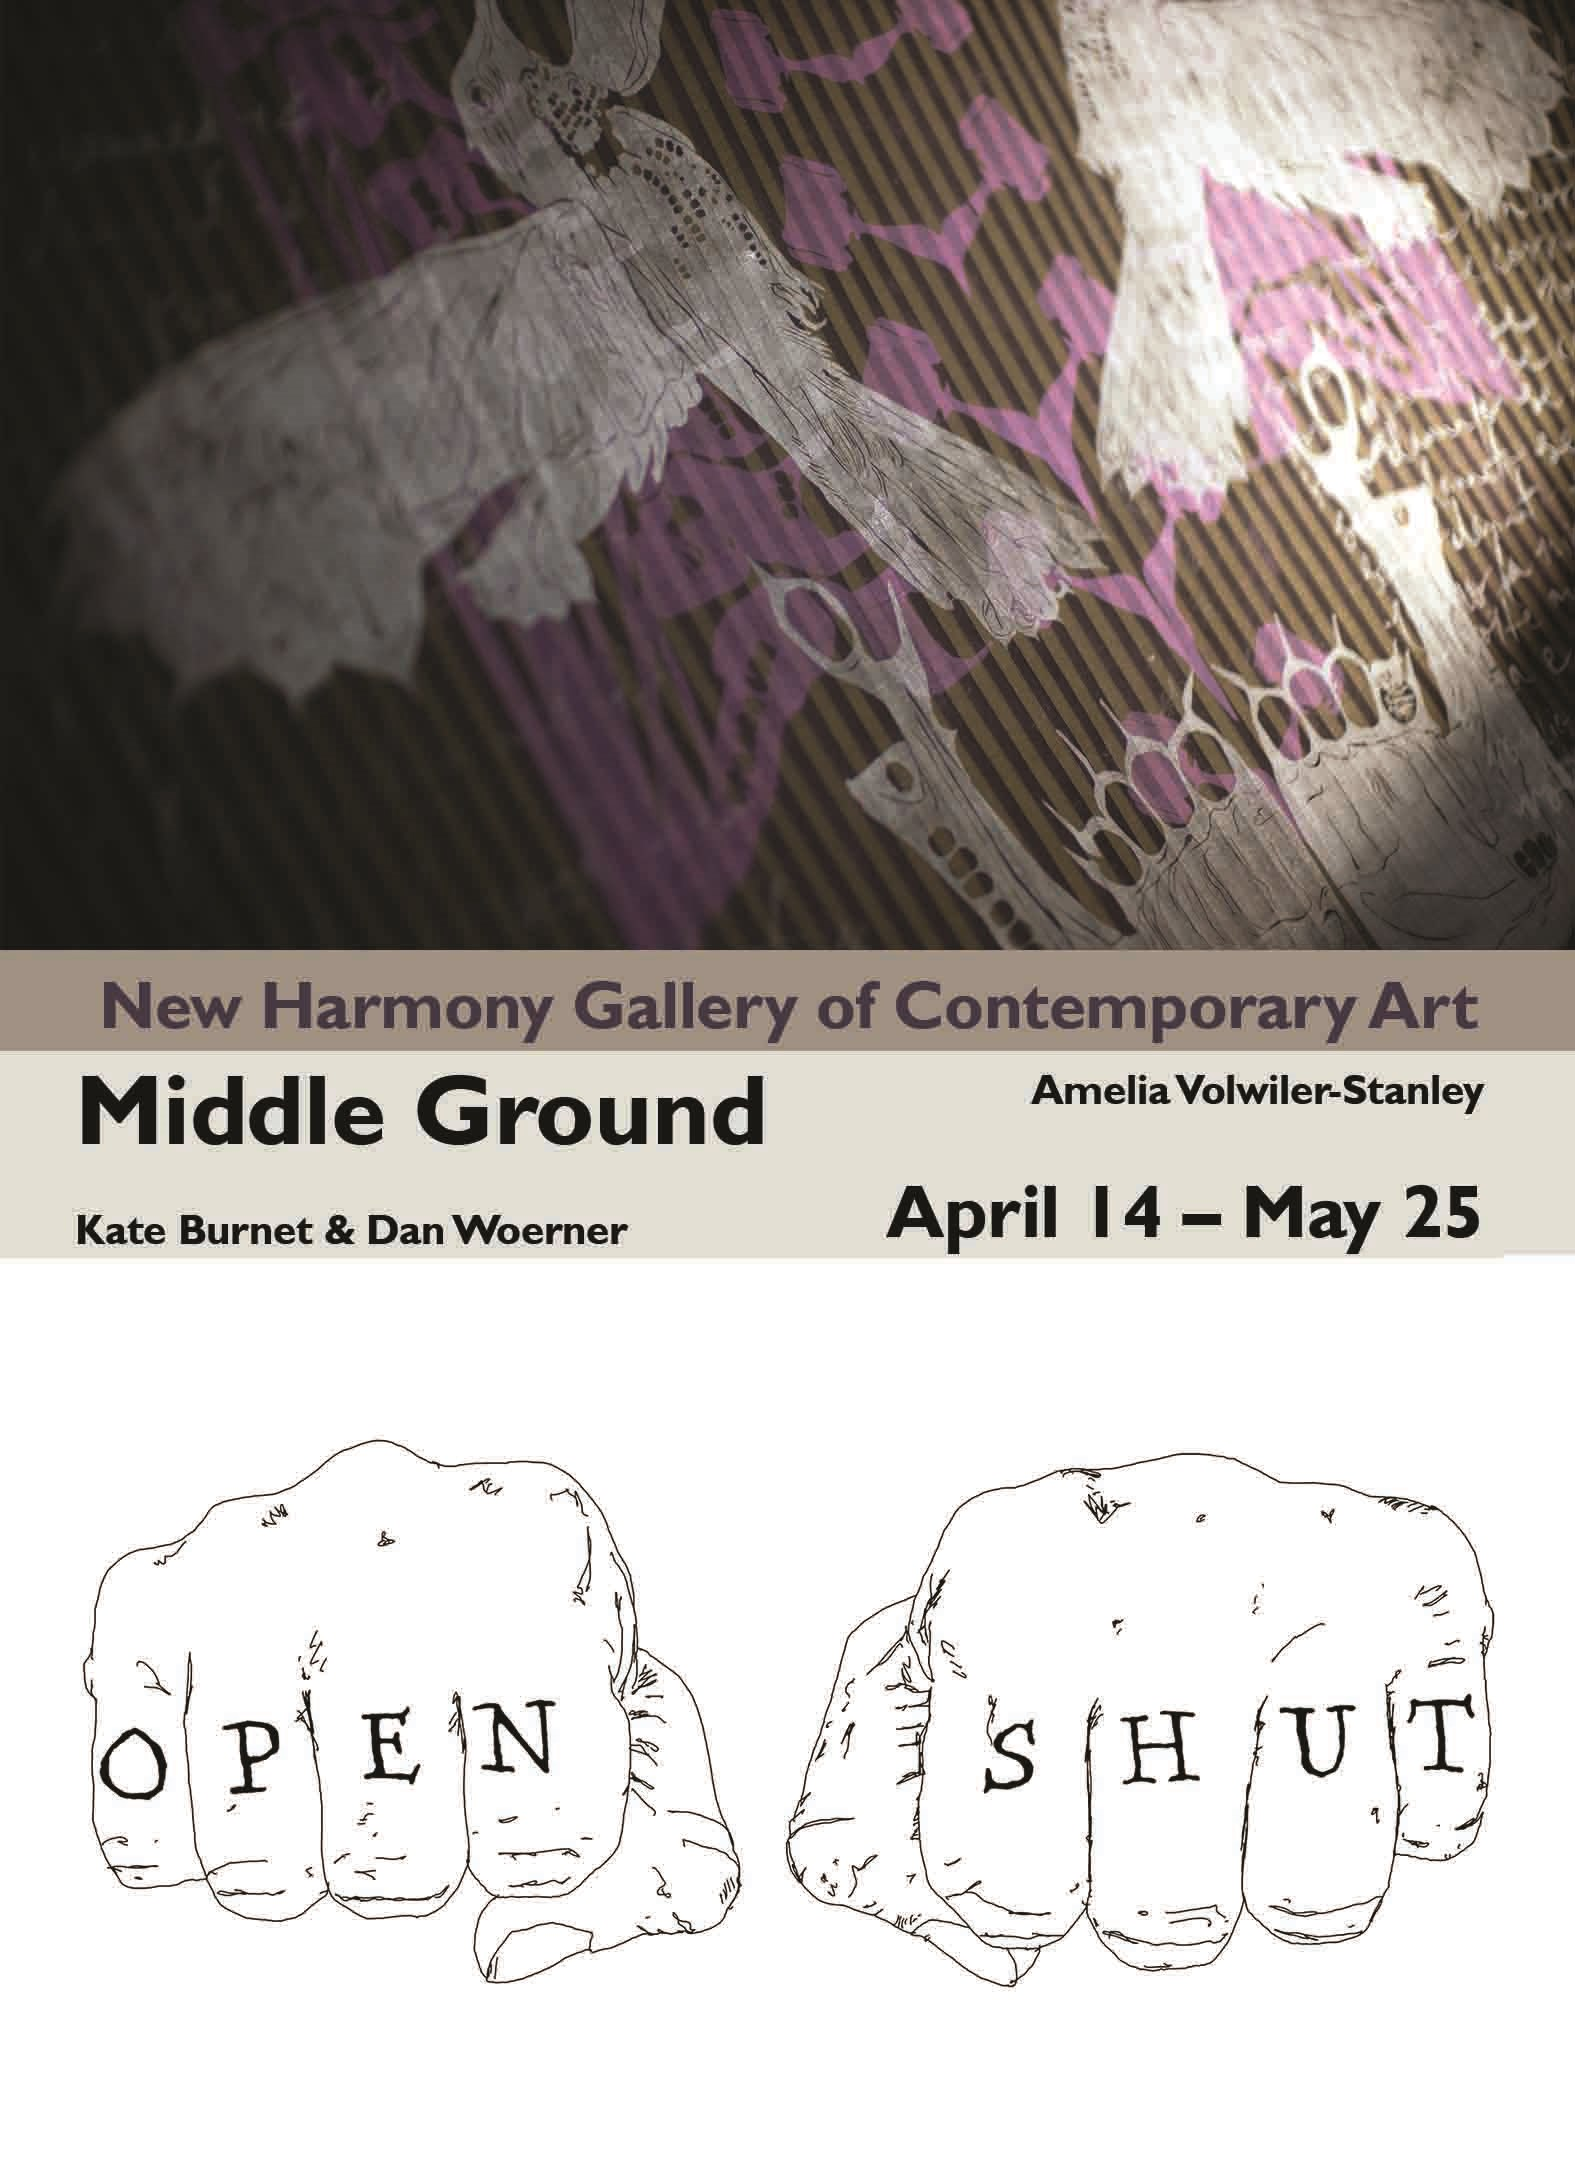 New Harmony Gallery opens new exhibition, Middle Ground